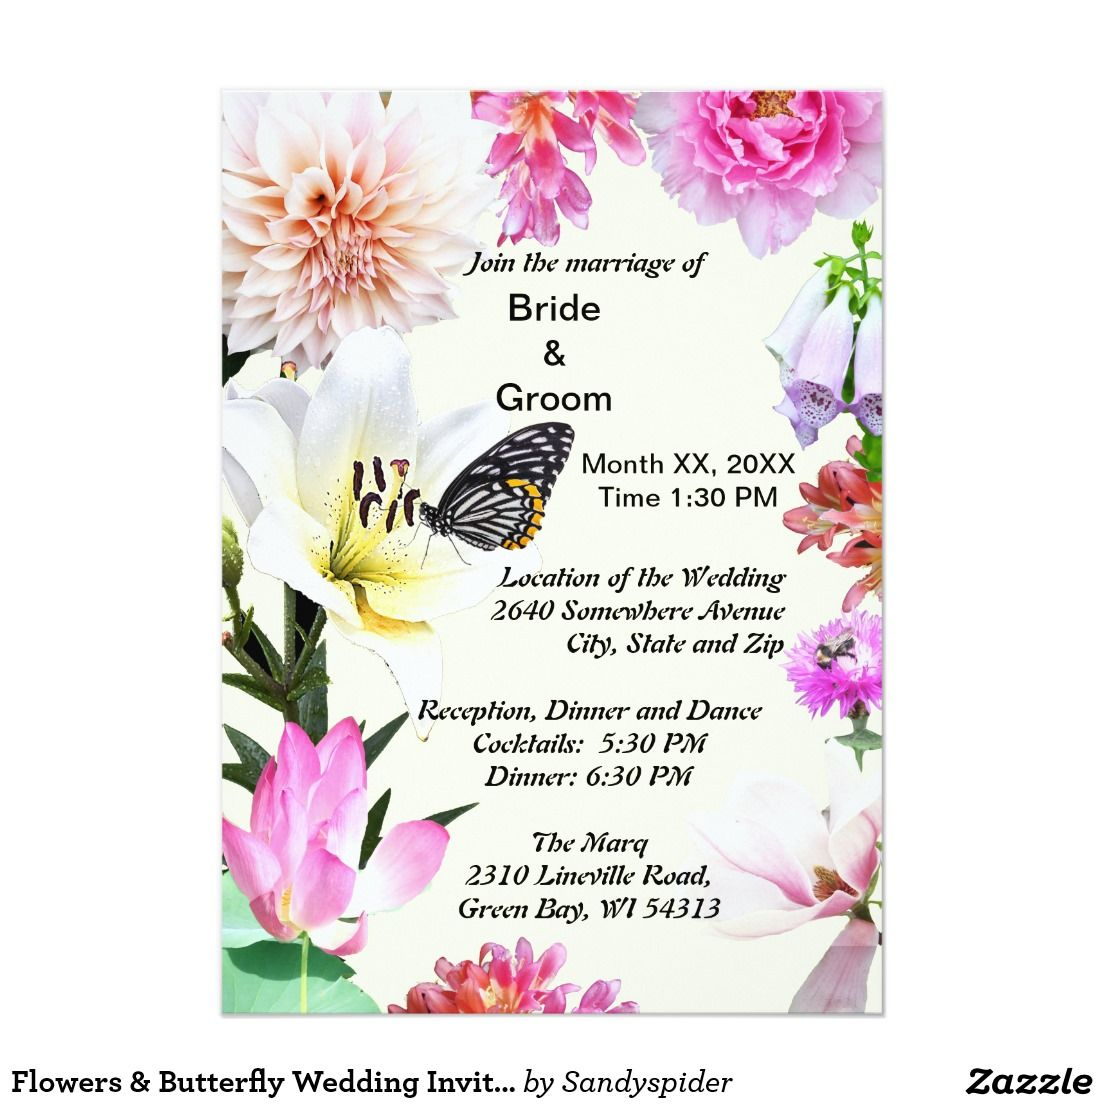 Flowers & Butterfly Wedding Invitation | Products